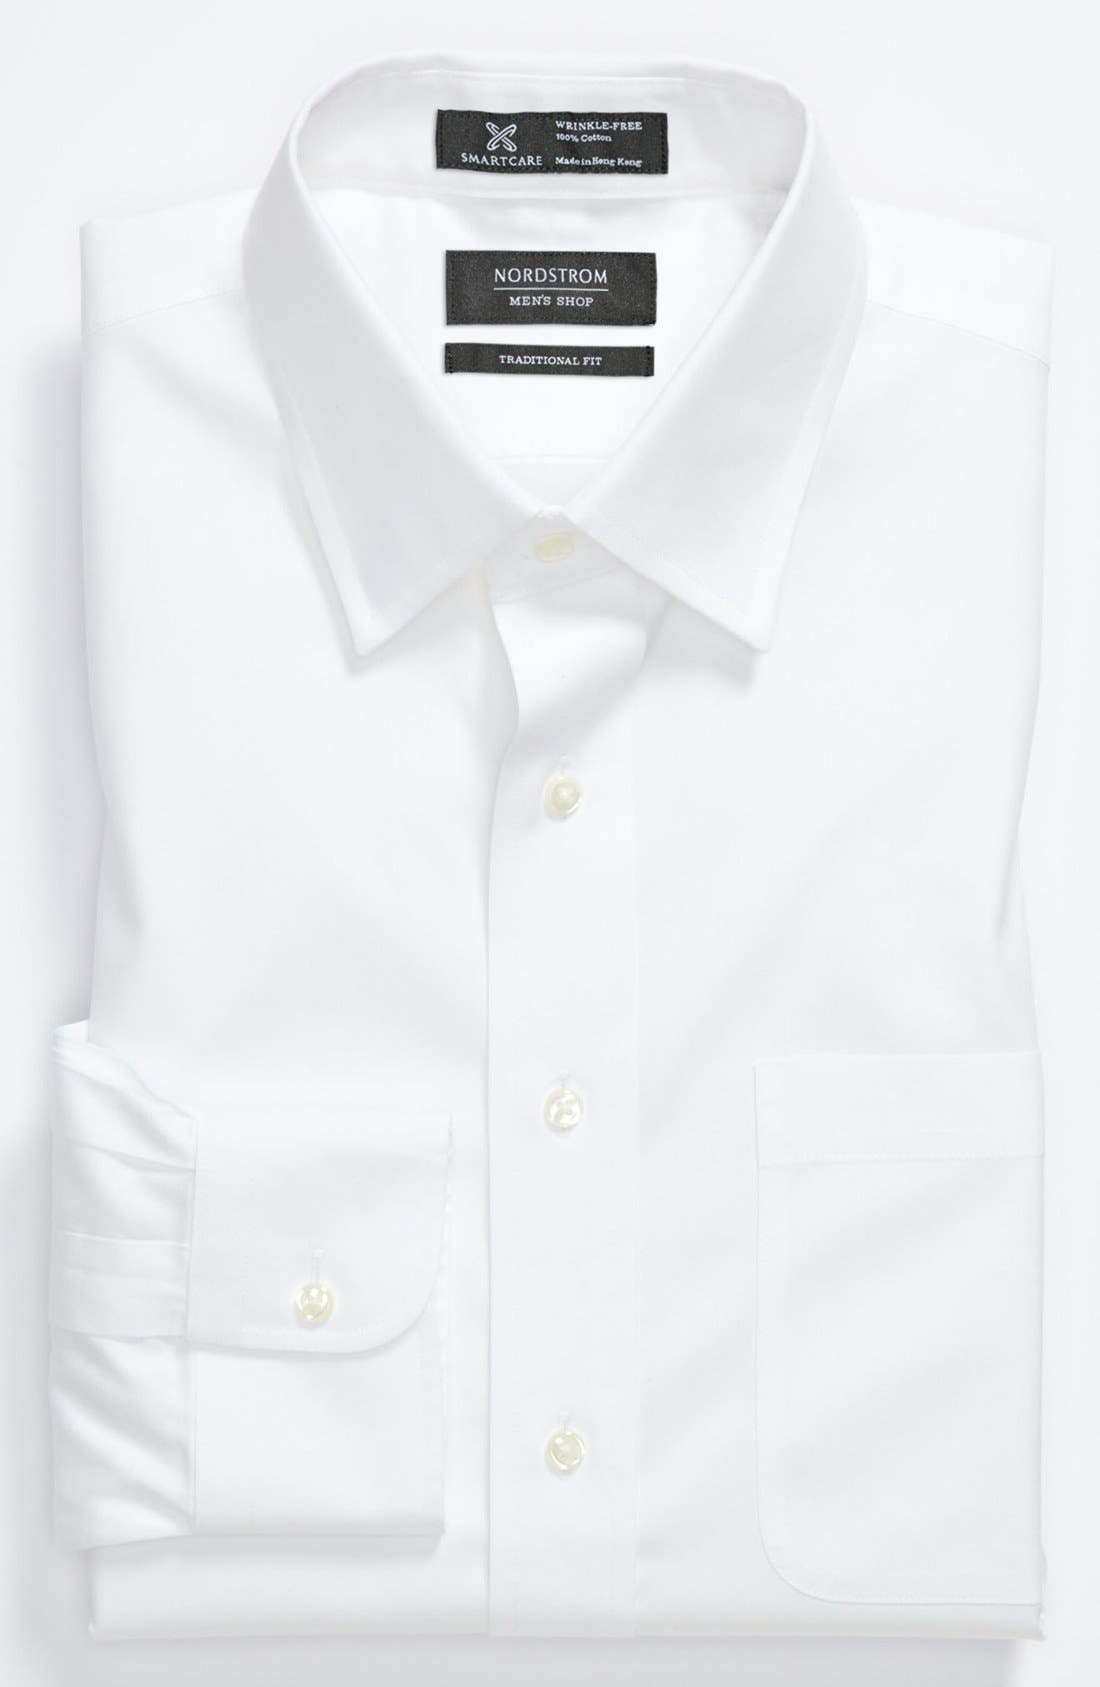 Alternate Image 1 Selected - Nordstrom Men's Shop Smartcare™ Traditional Fit Dress Shirt